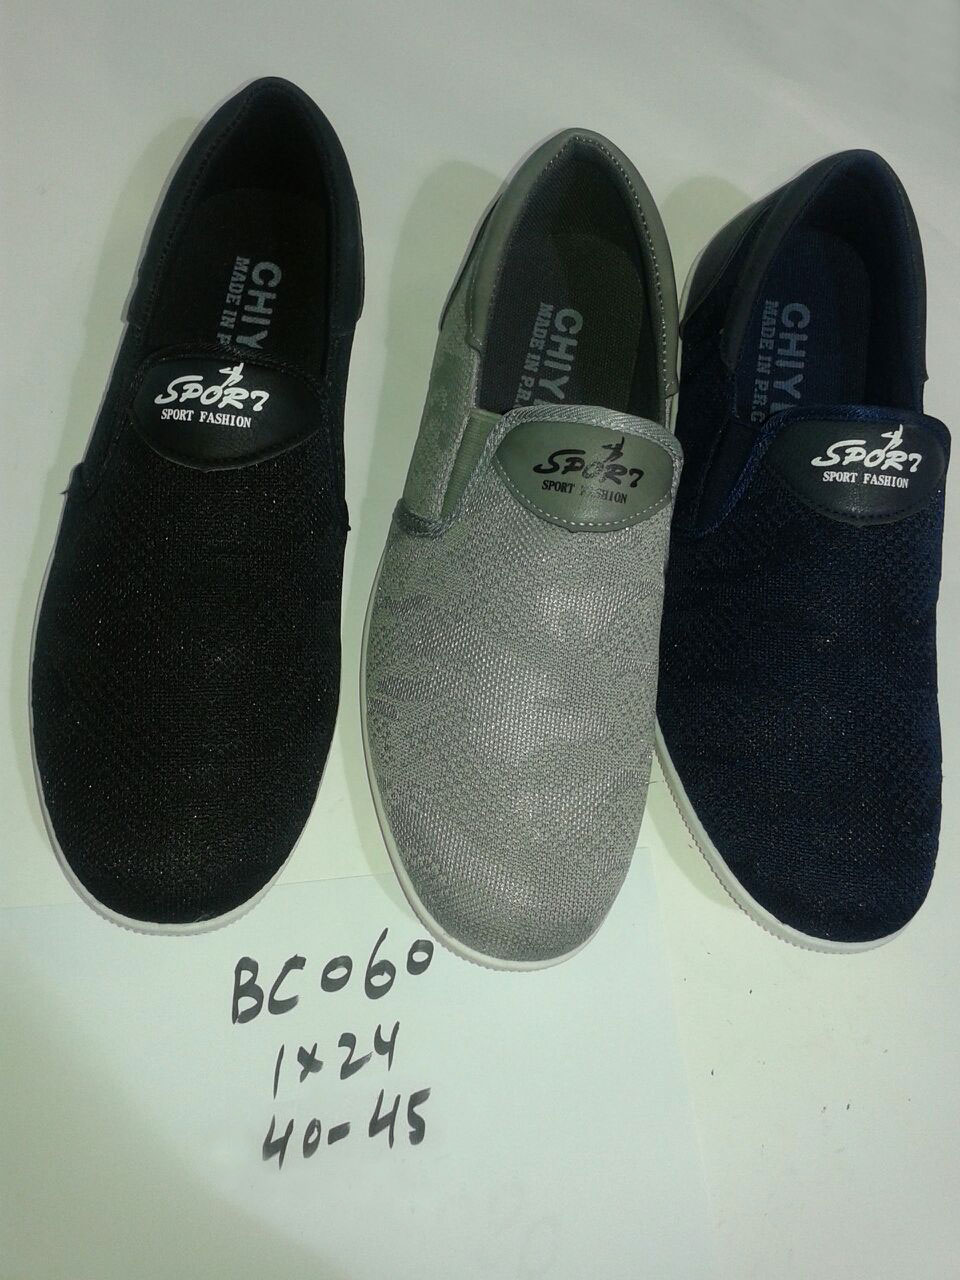 Men's slip-on casual loafer shoes